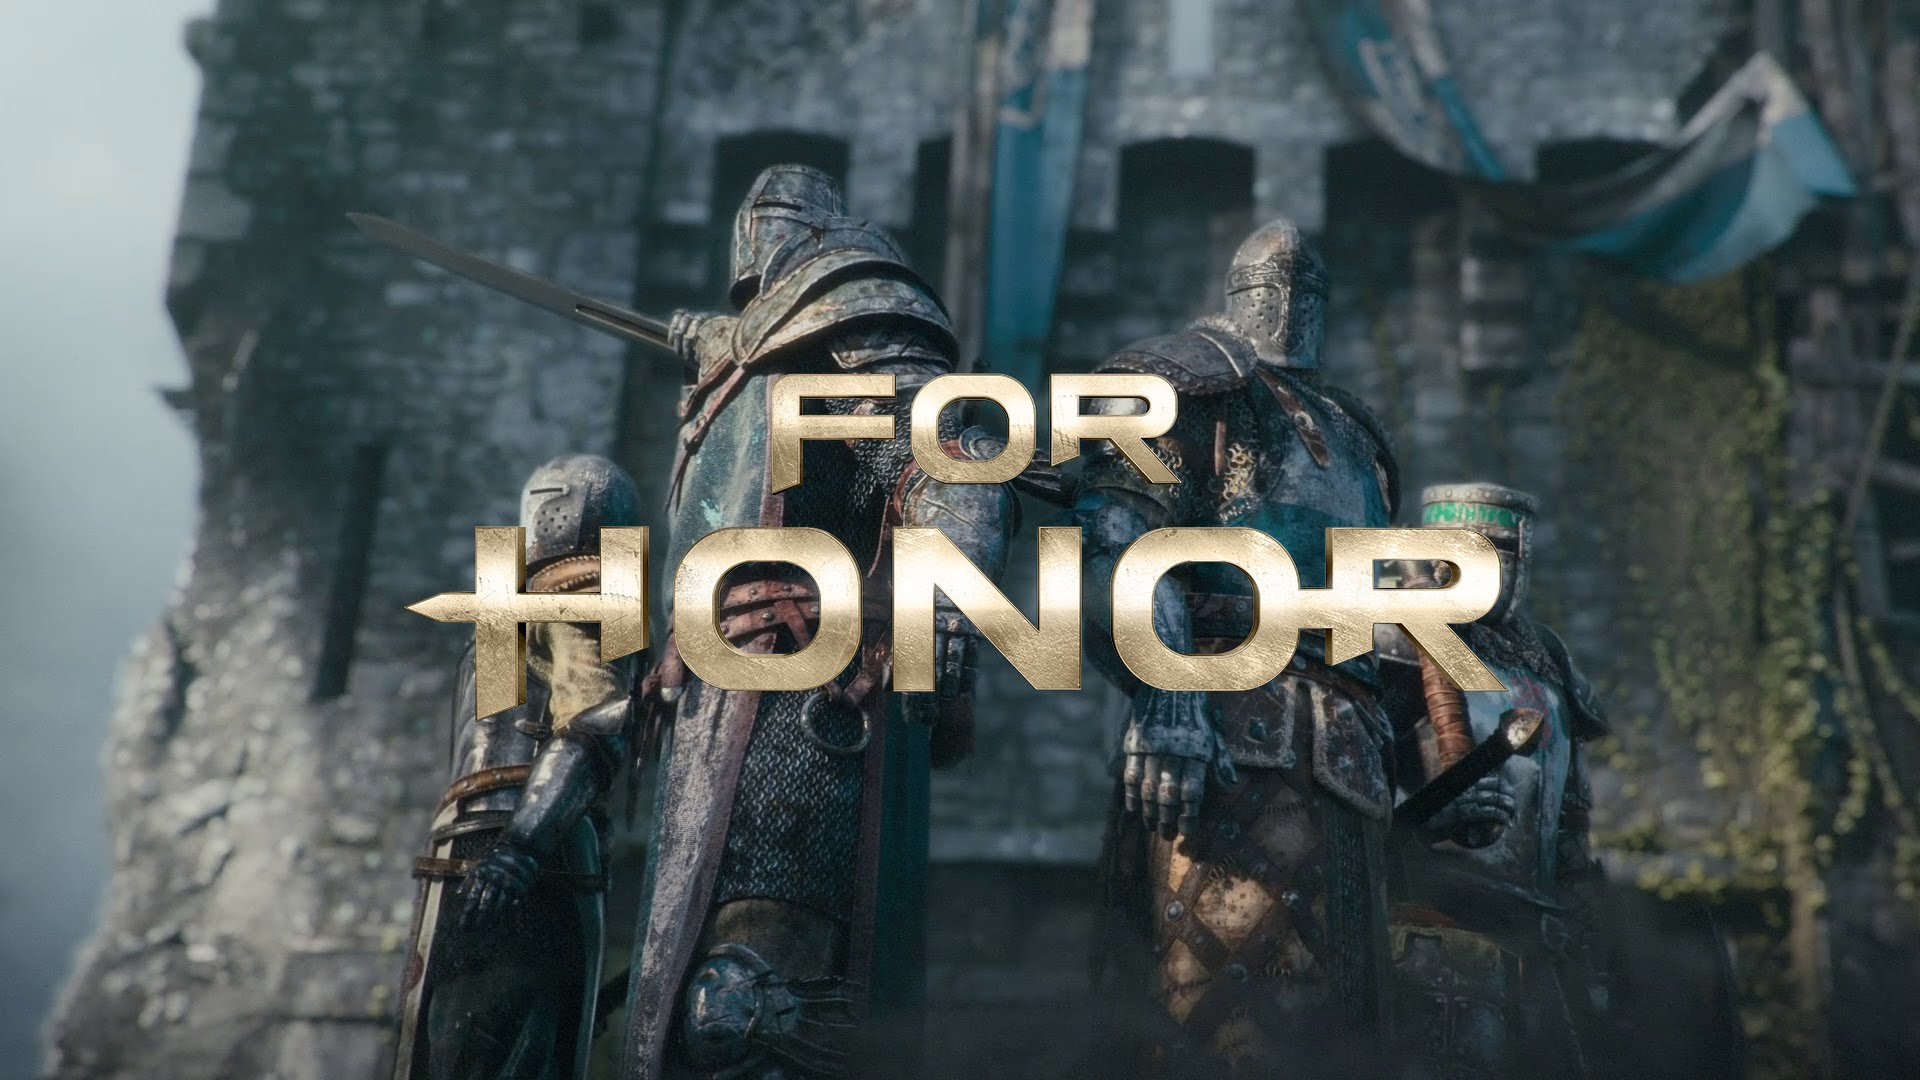 'For Honor' Offers Fast-Paced Yet Freakishly Focused Combat